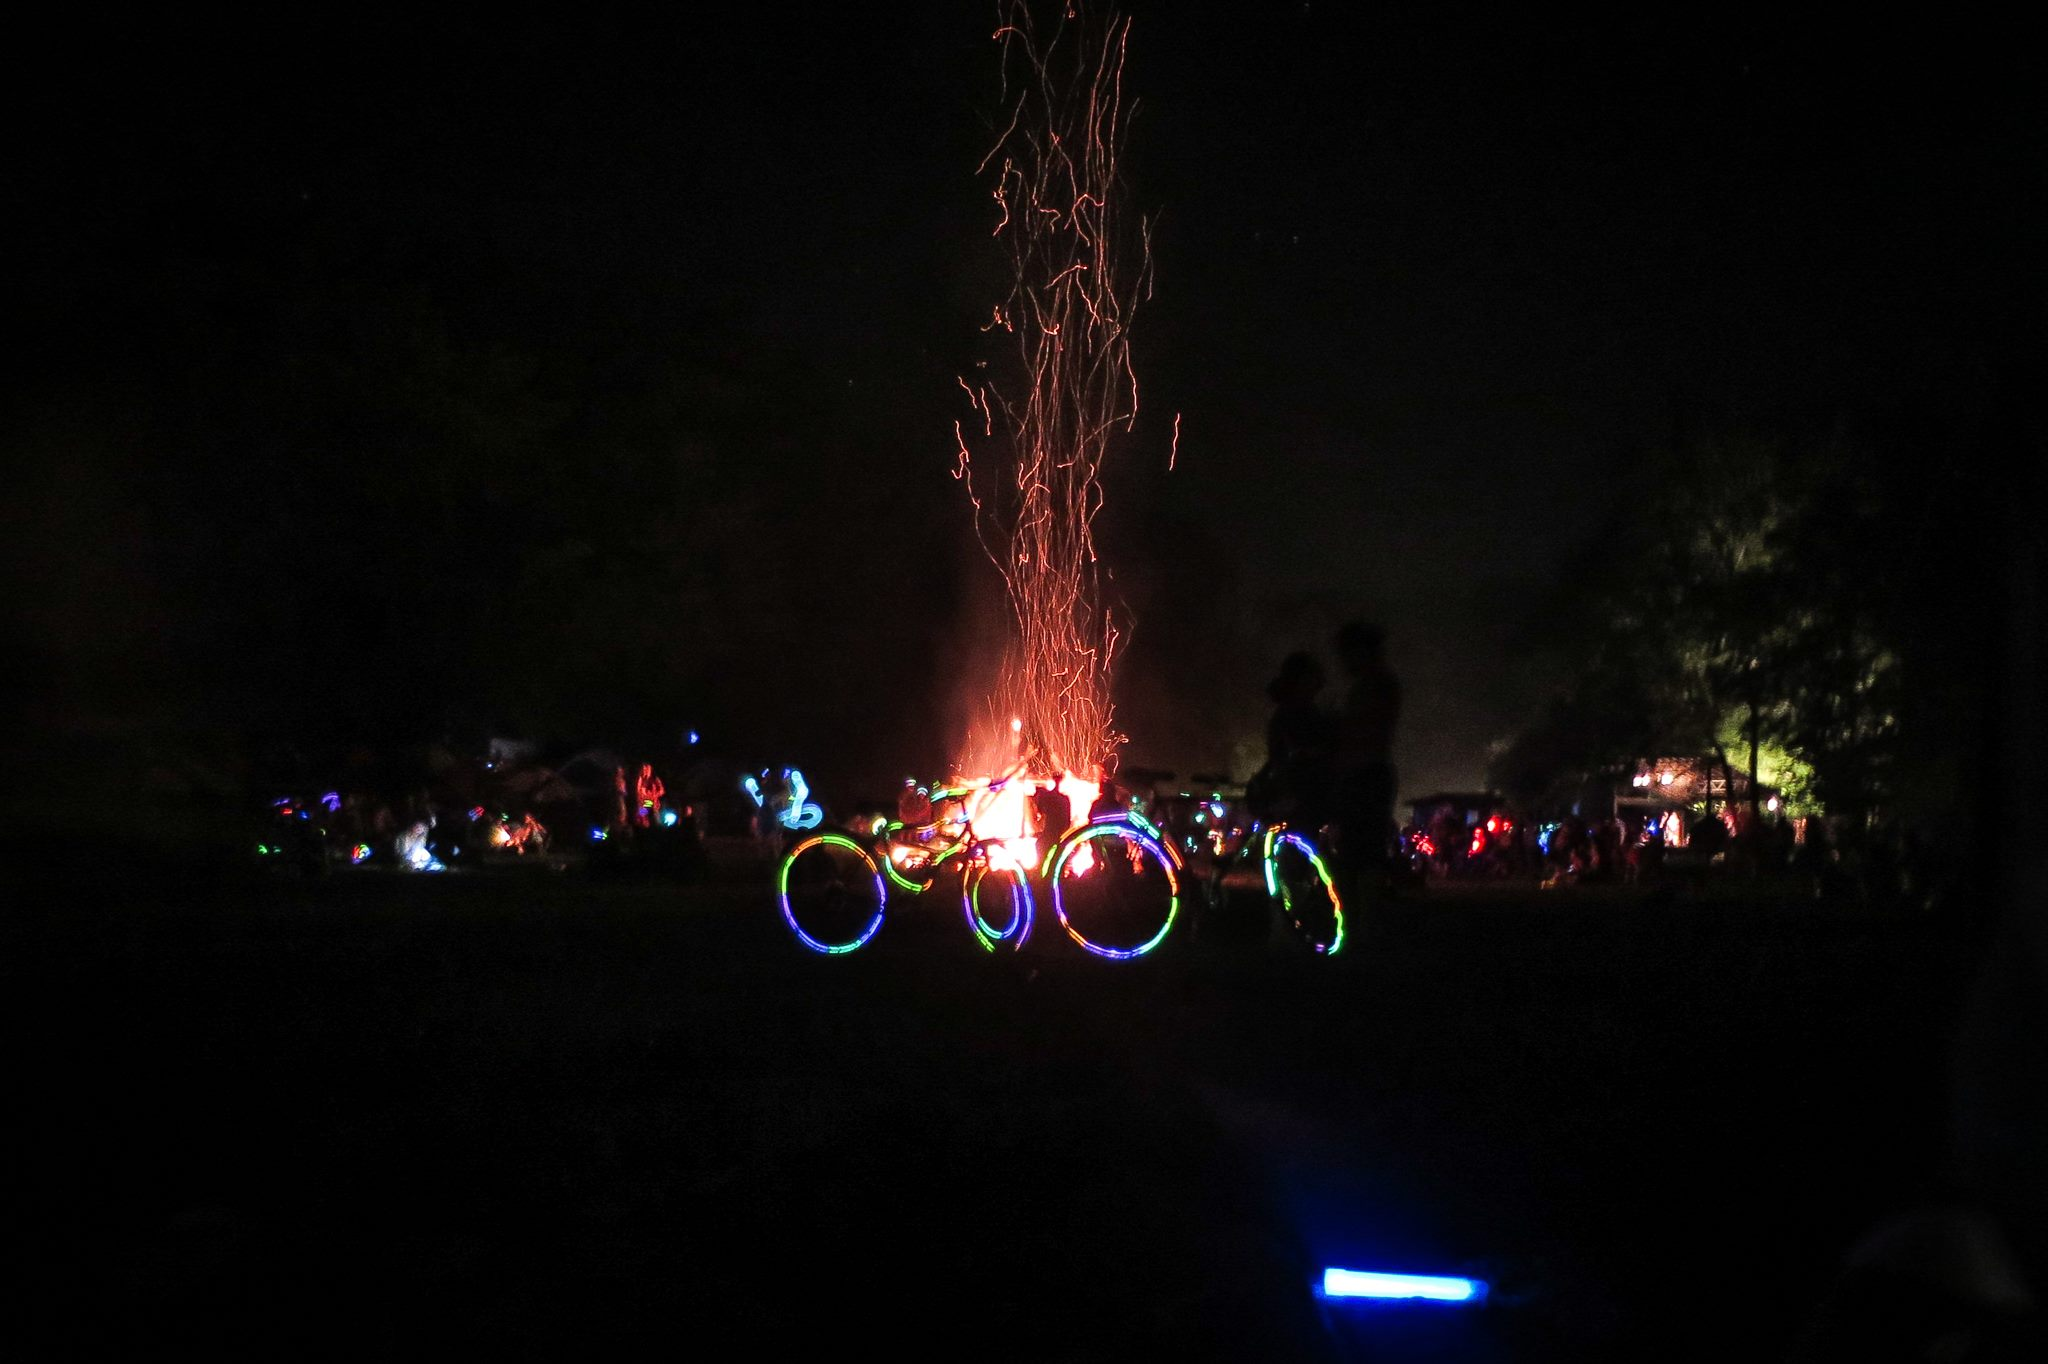 ss 2015 fire bikes night glow sticks, trippy